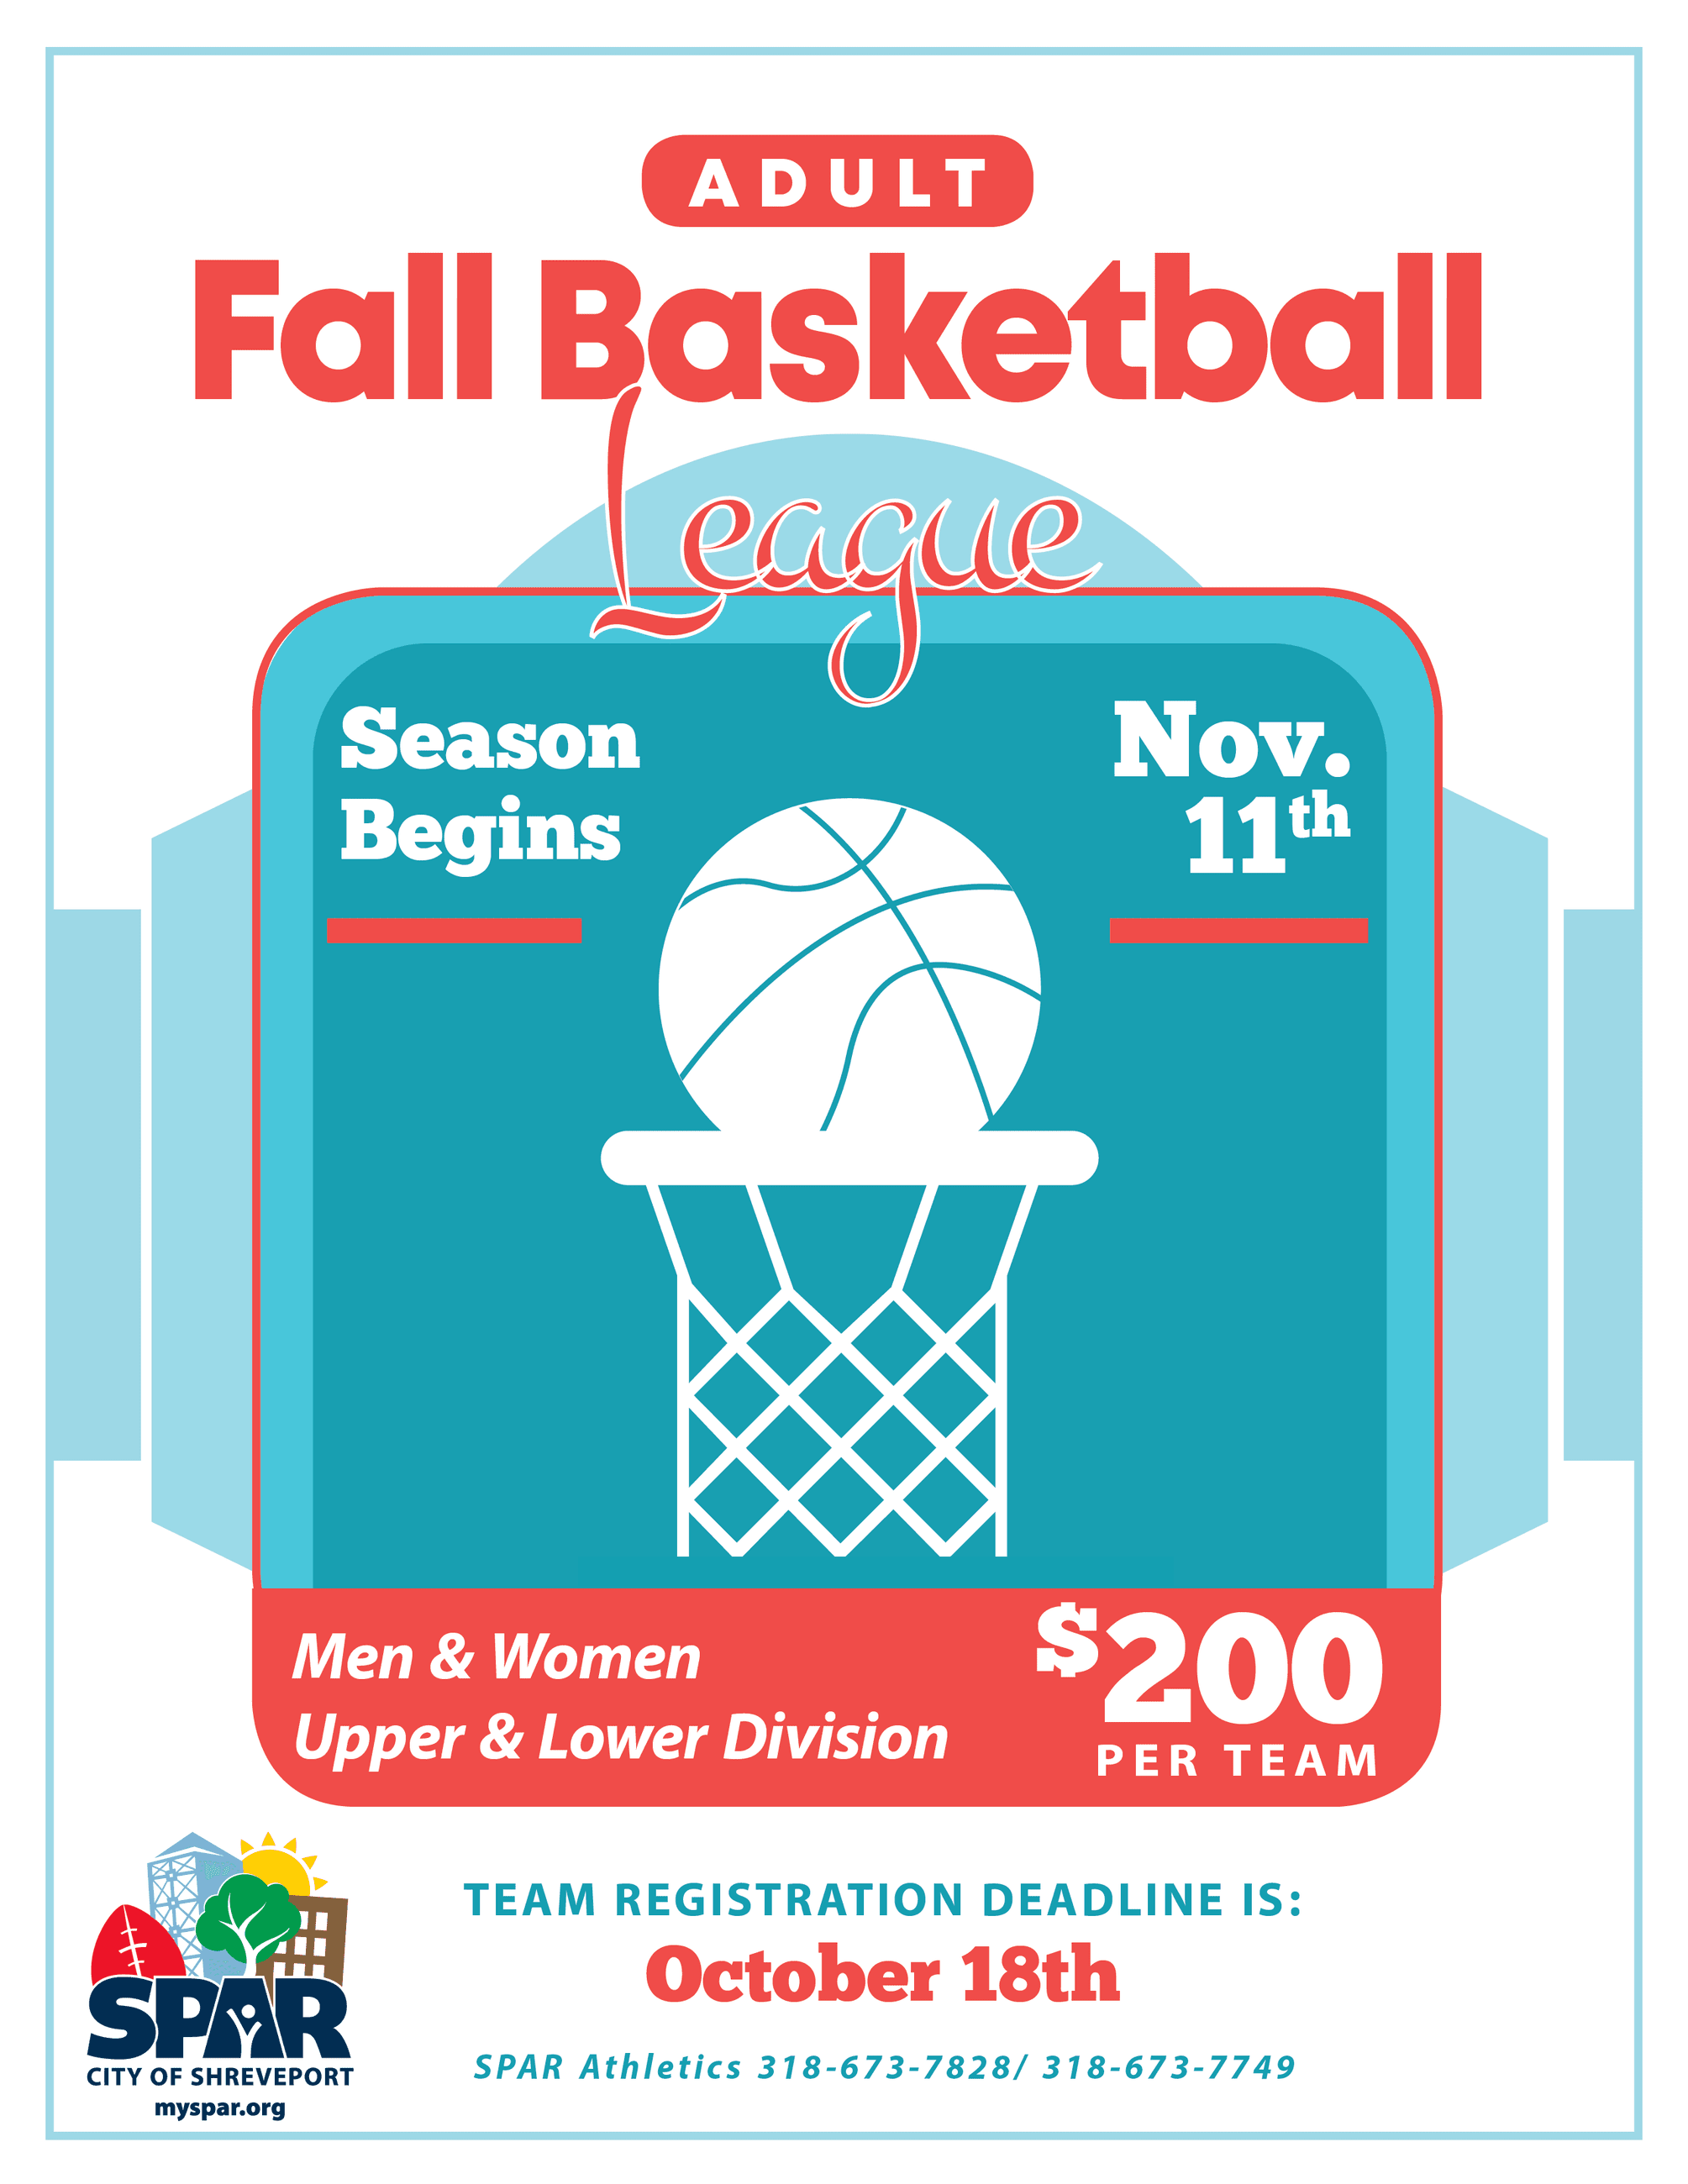 Fall Basketball